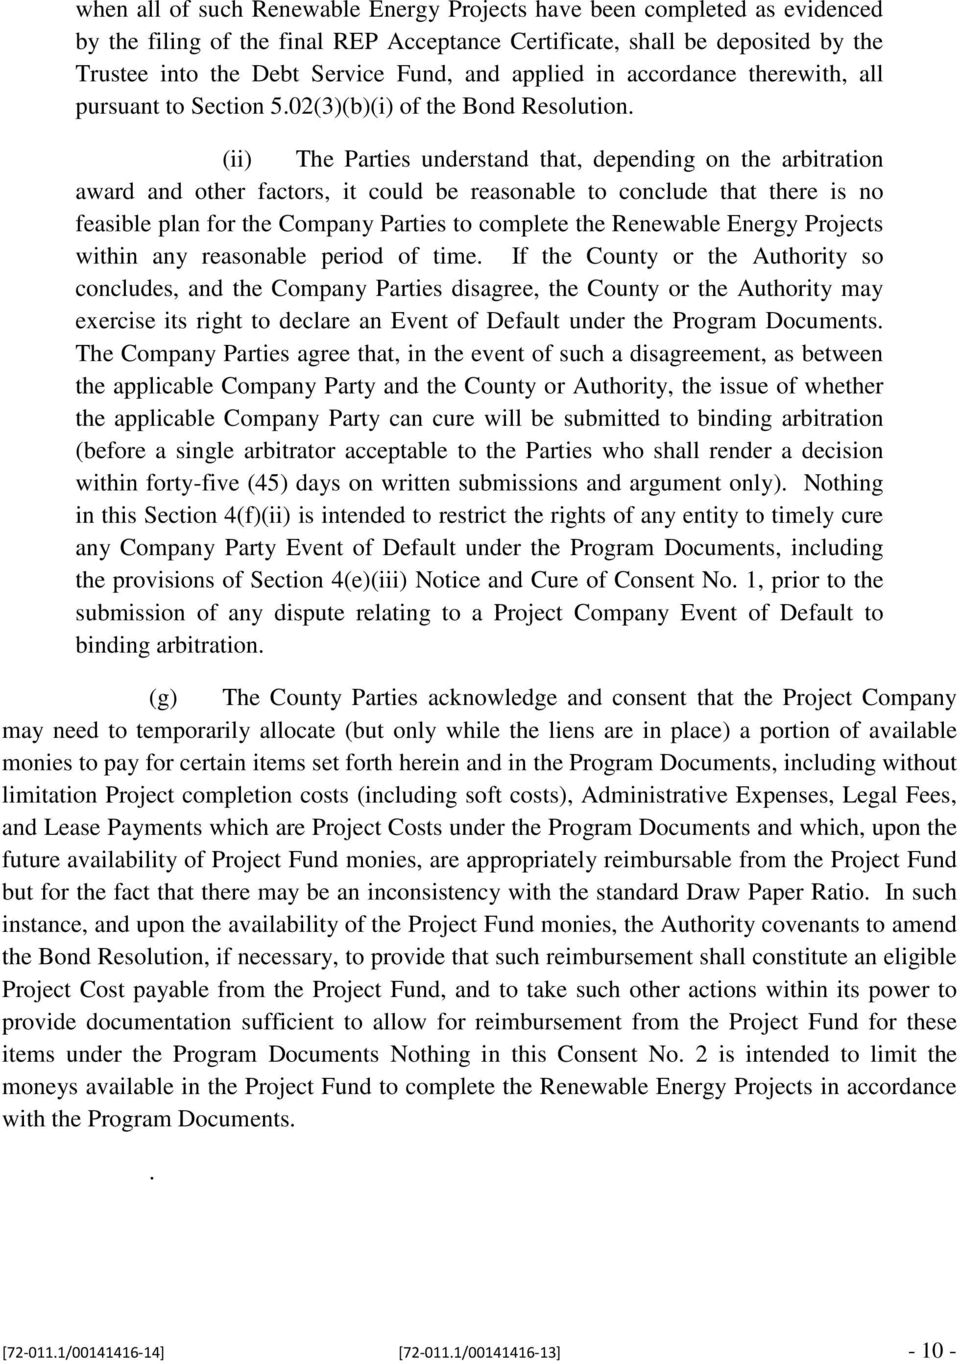 (ii) The Parties understand that, depending on the arbitration award and other factors, it could be reasonable to conclude that there is no feasible plan for the Company Parties to complete the